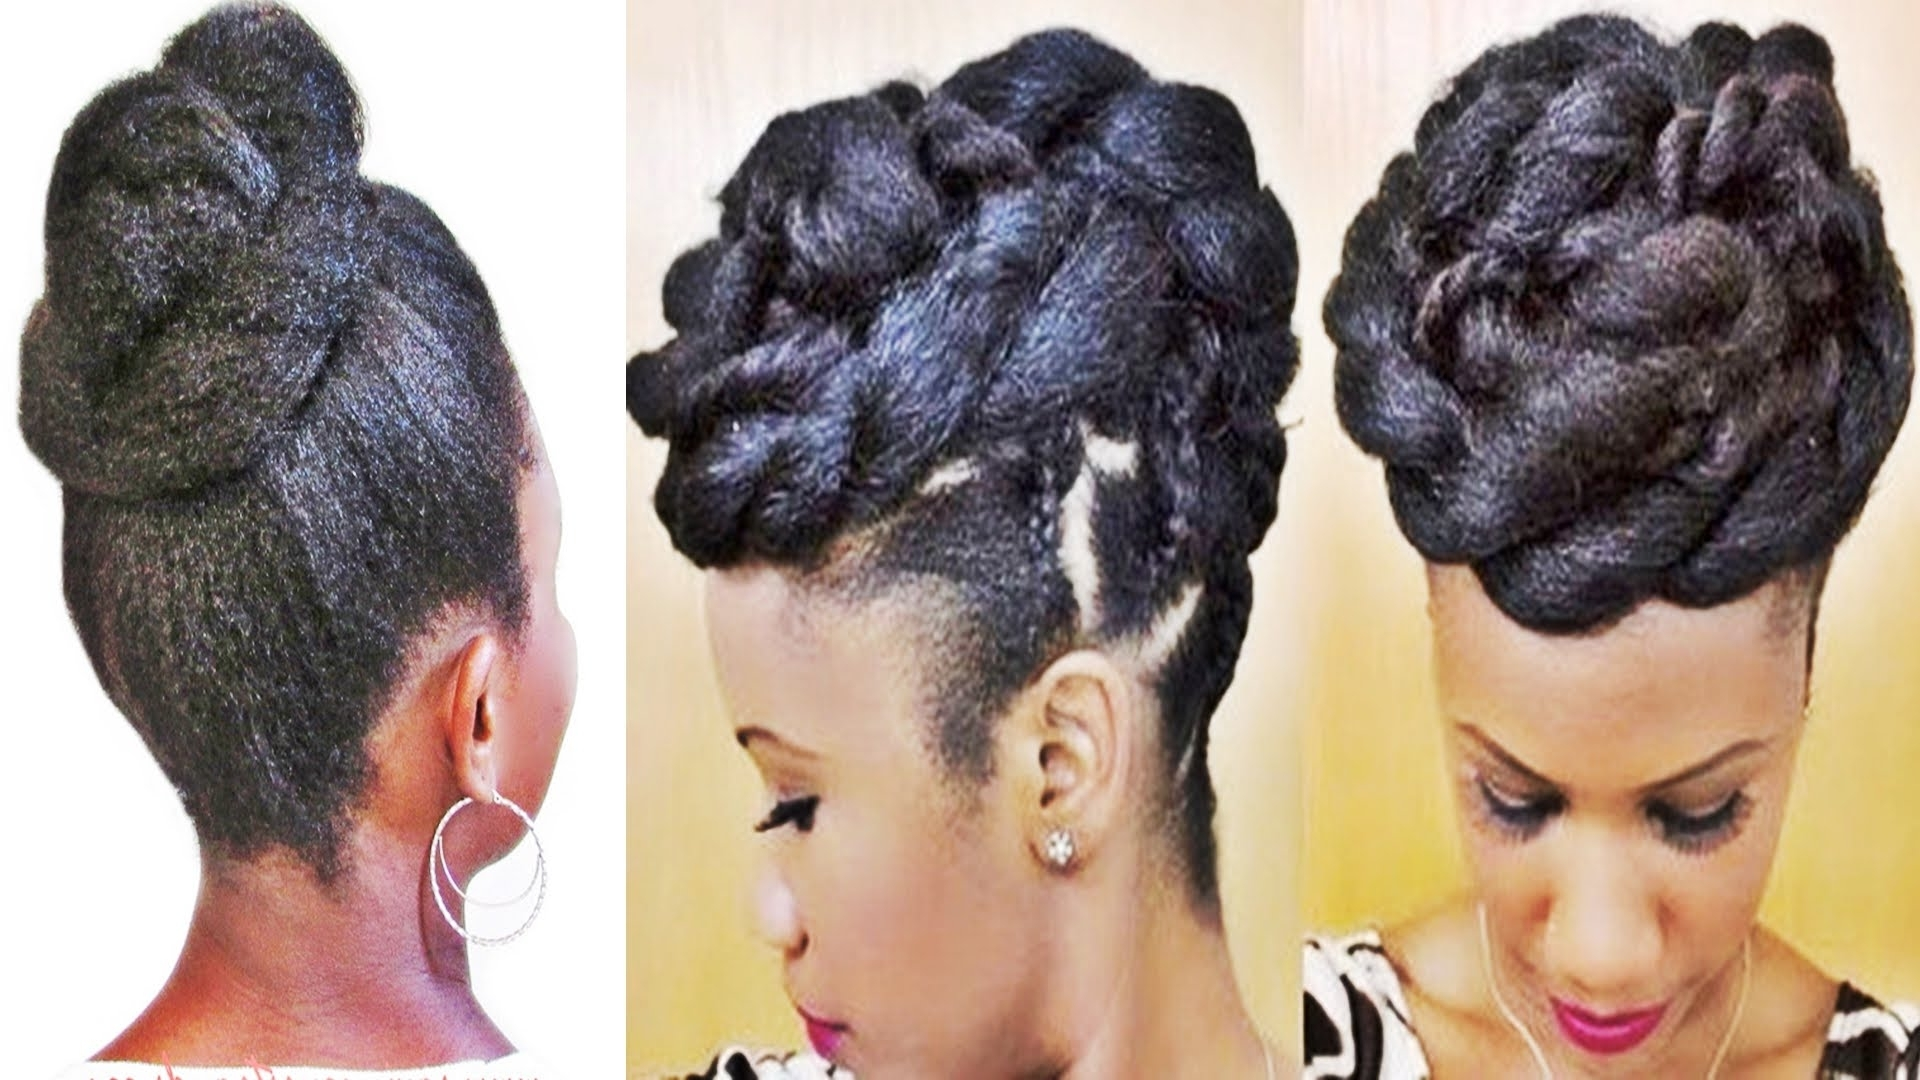 Braids And Twists Updo Hairstyle For Black Women – Youtube For Braided Hair Updo Hairstyles (View 7 of 15)